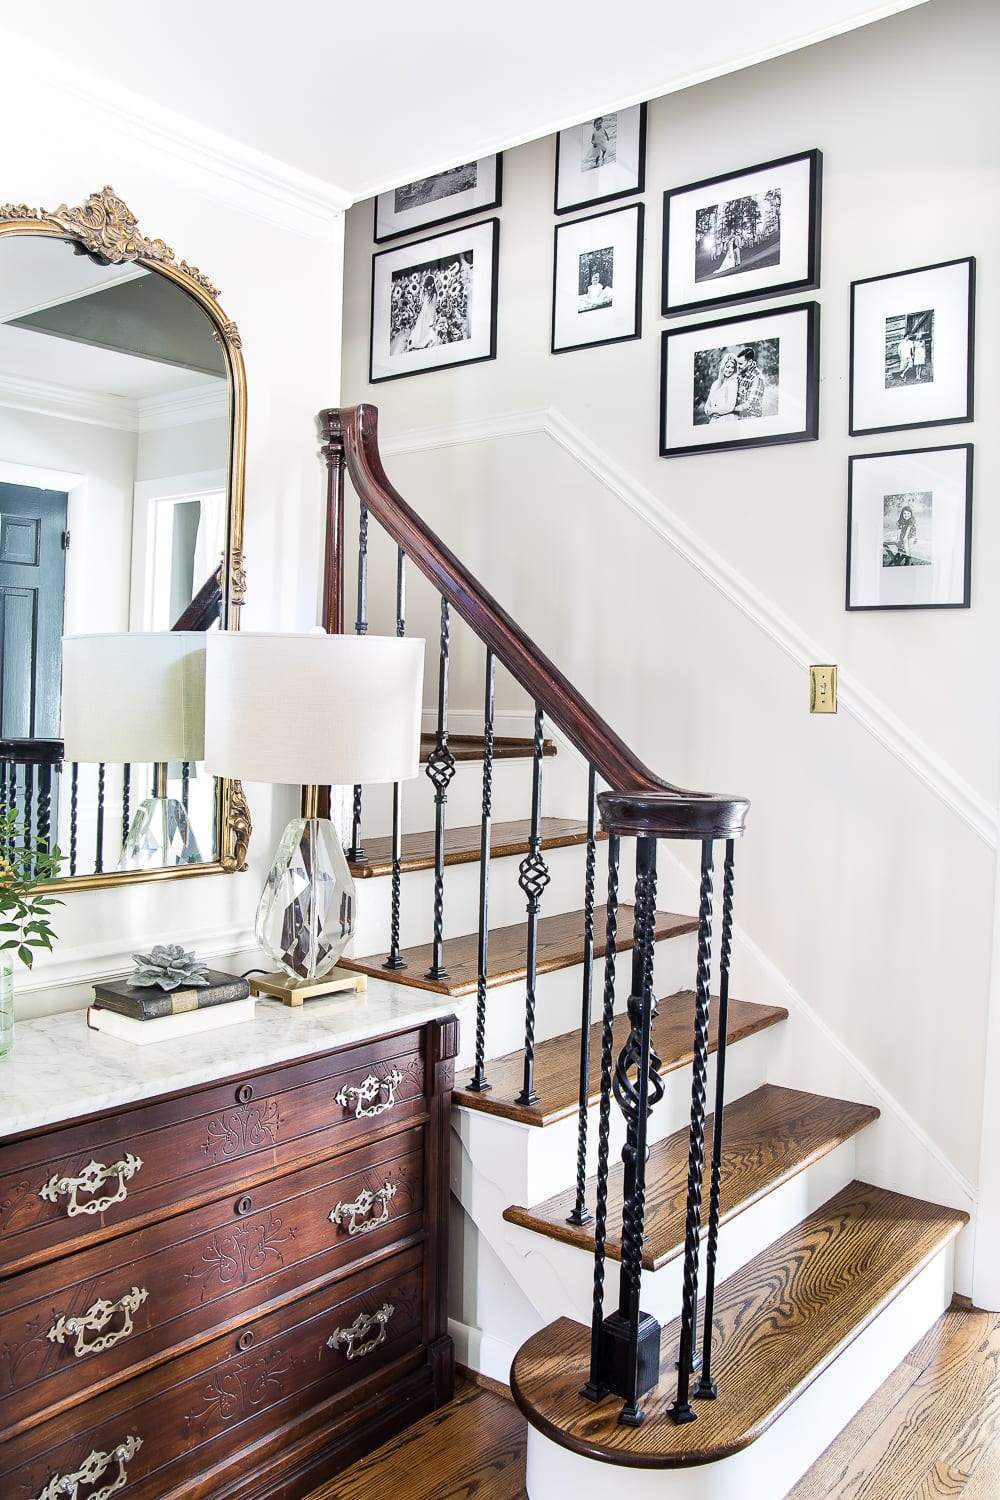 12 of the most common decorating mistakes most people make when choosing paint colors, furniture layouts, and styling, and tips on how to avoid them. #decorating #decoratingmistakes #decoratingtips Replace tons of family photos in frames on tabletops with a streamlined gallery wall instead.